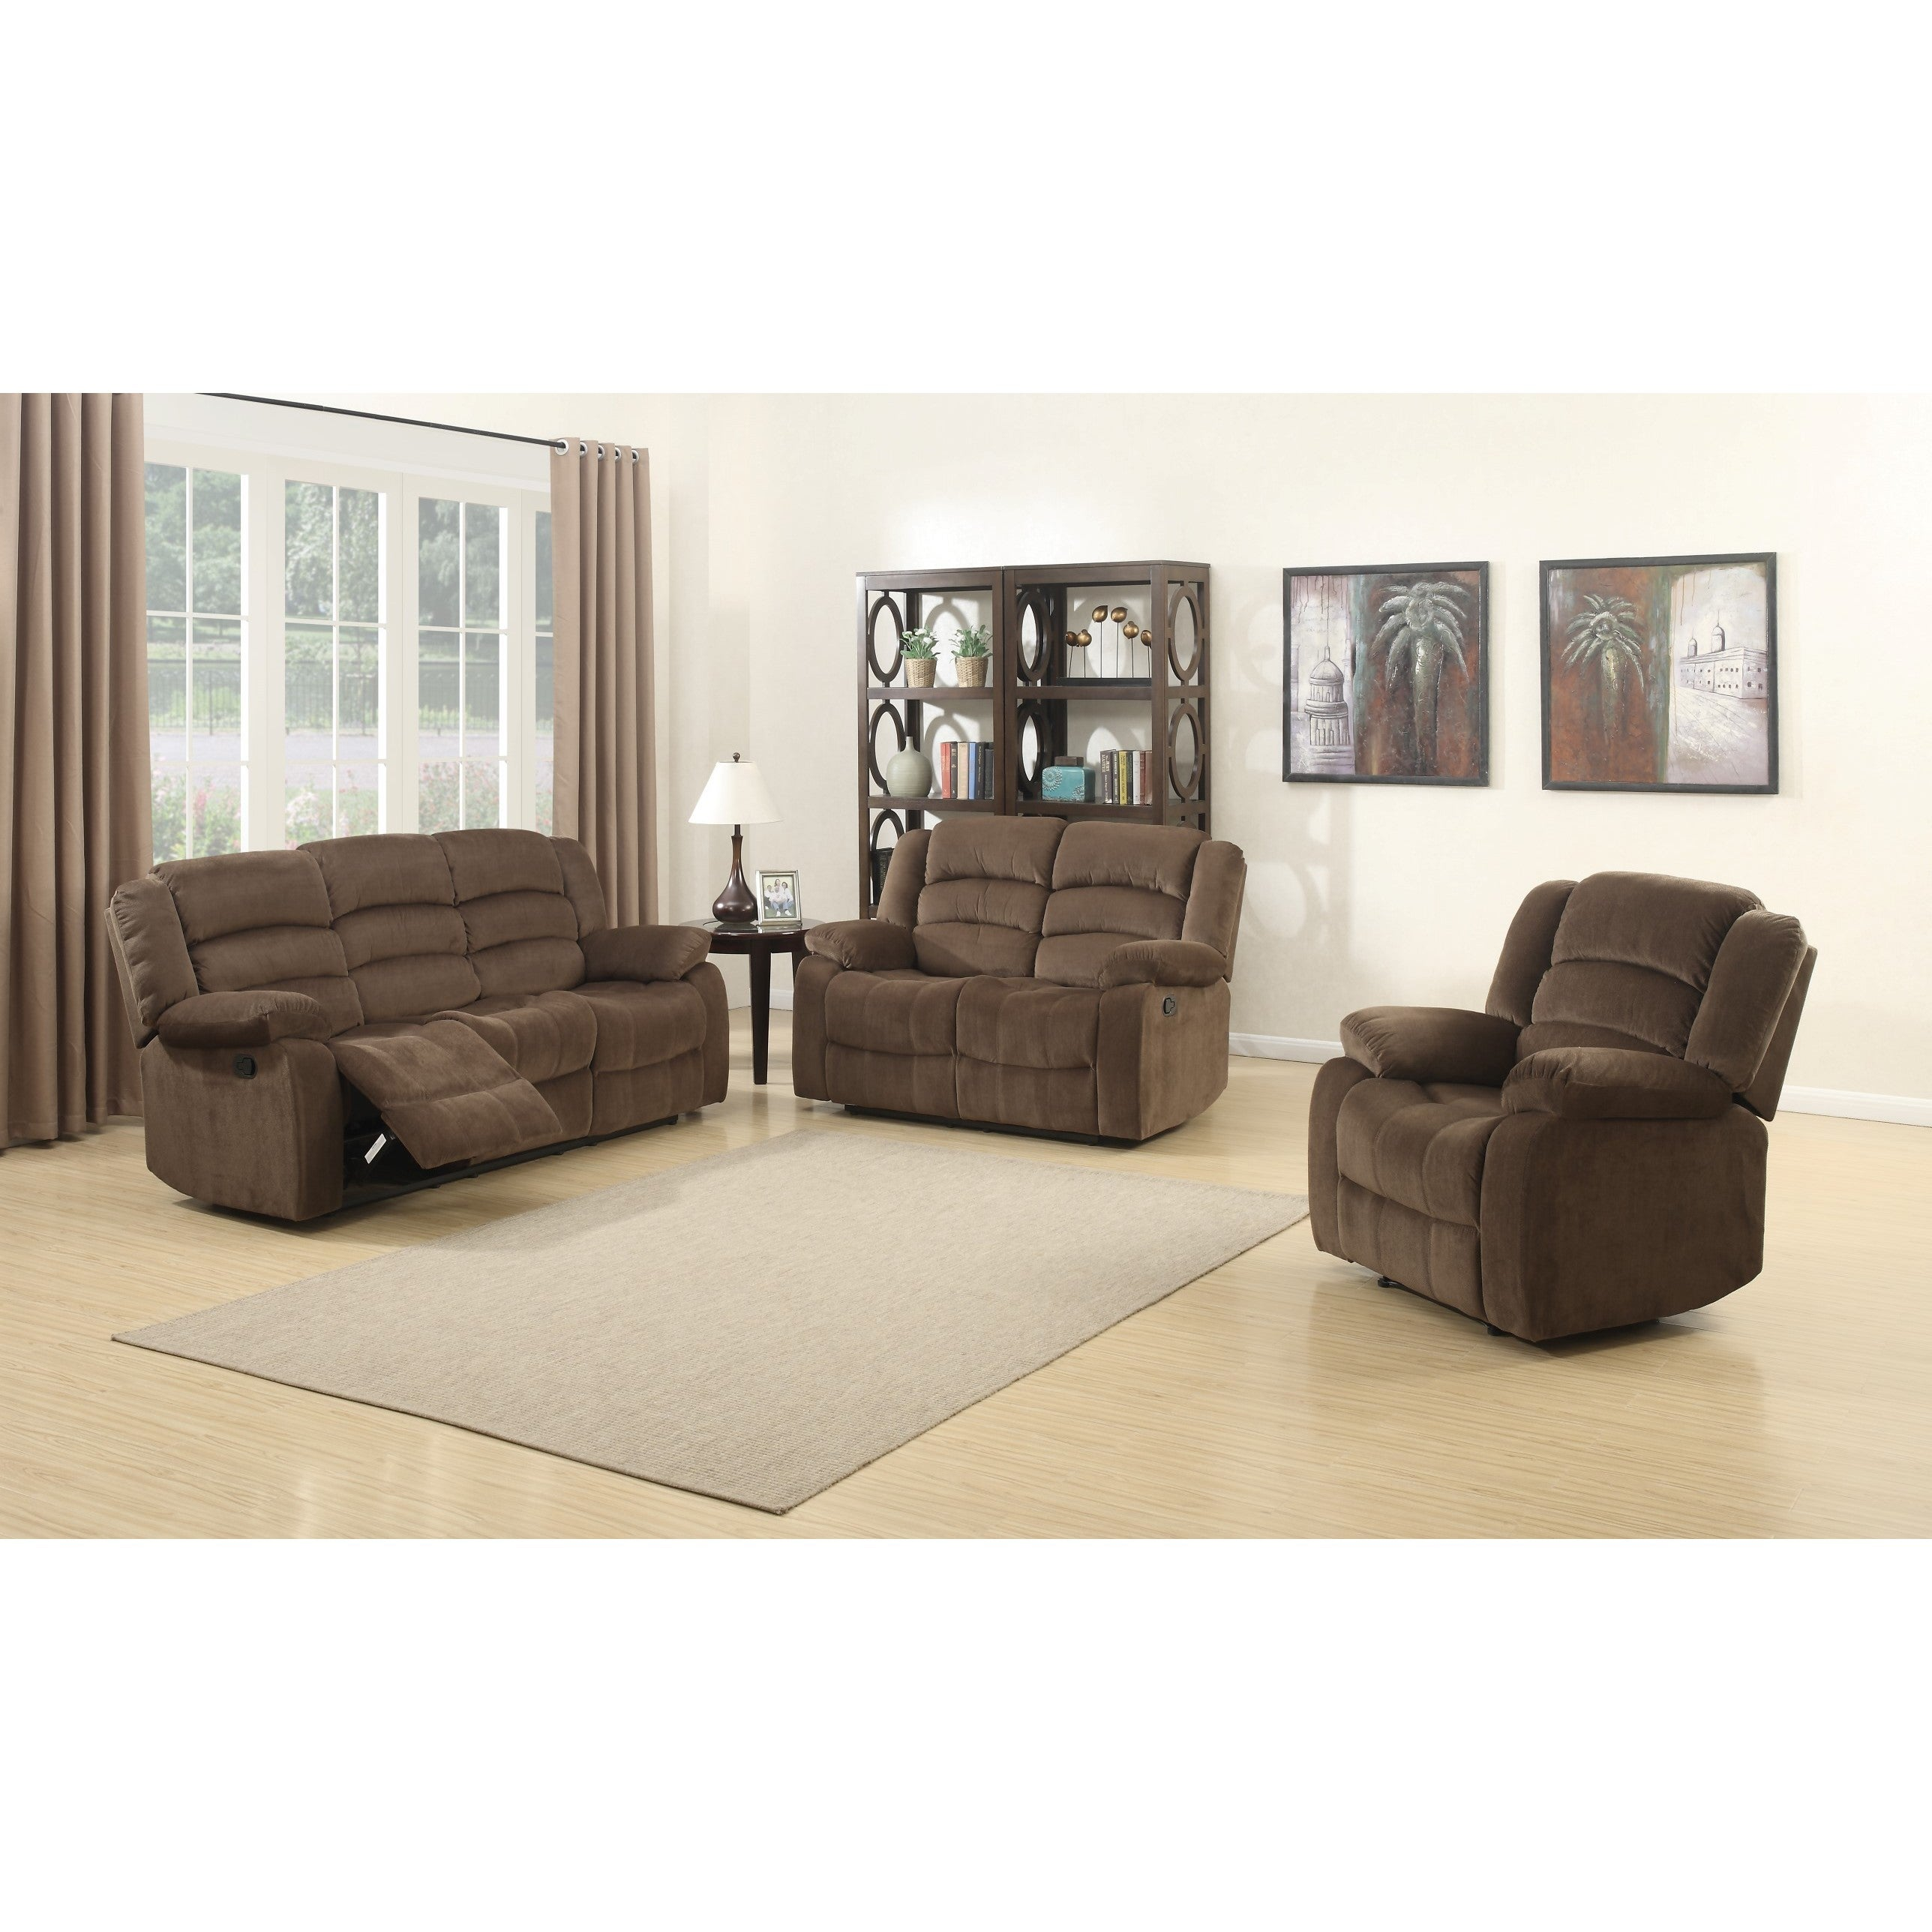 Shop Bill 3 Piece Contemporary Brown Reclining Living Room Set Free Shipping On